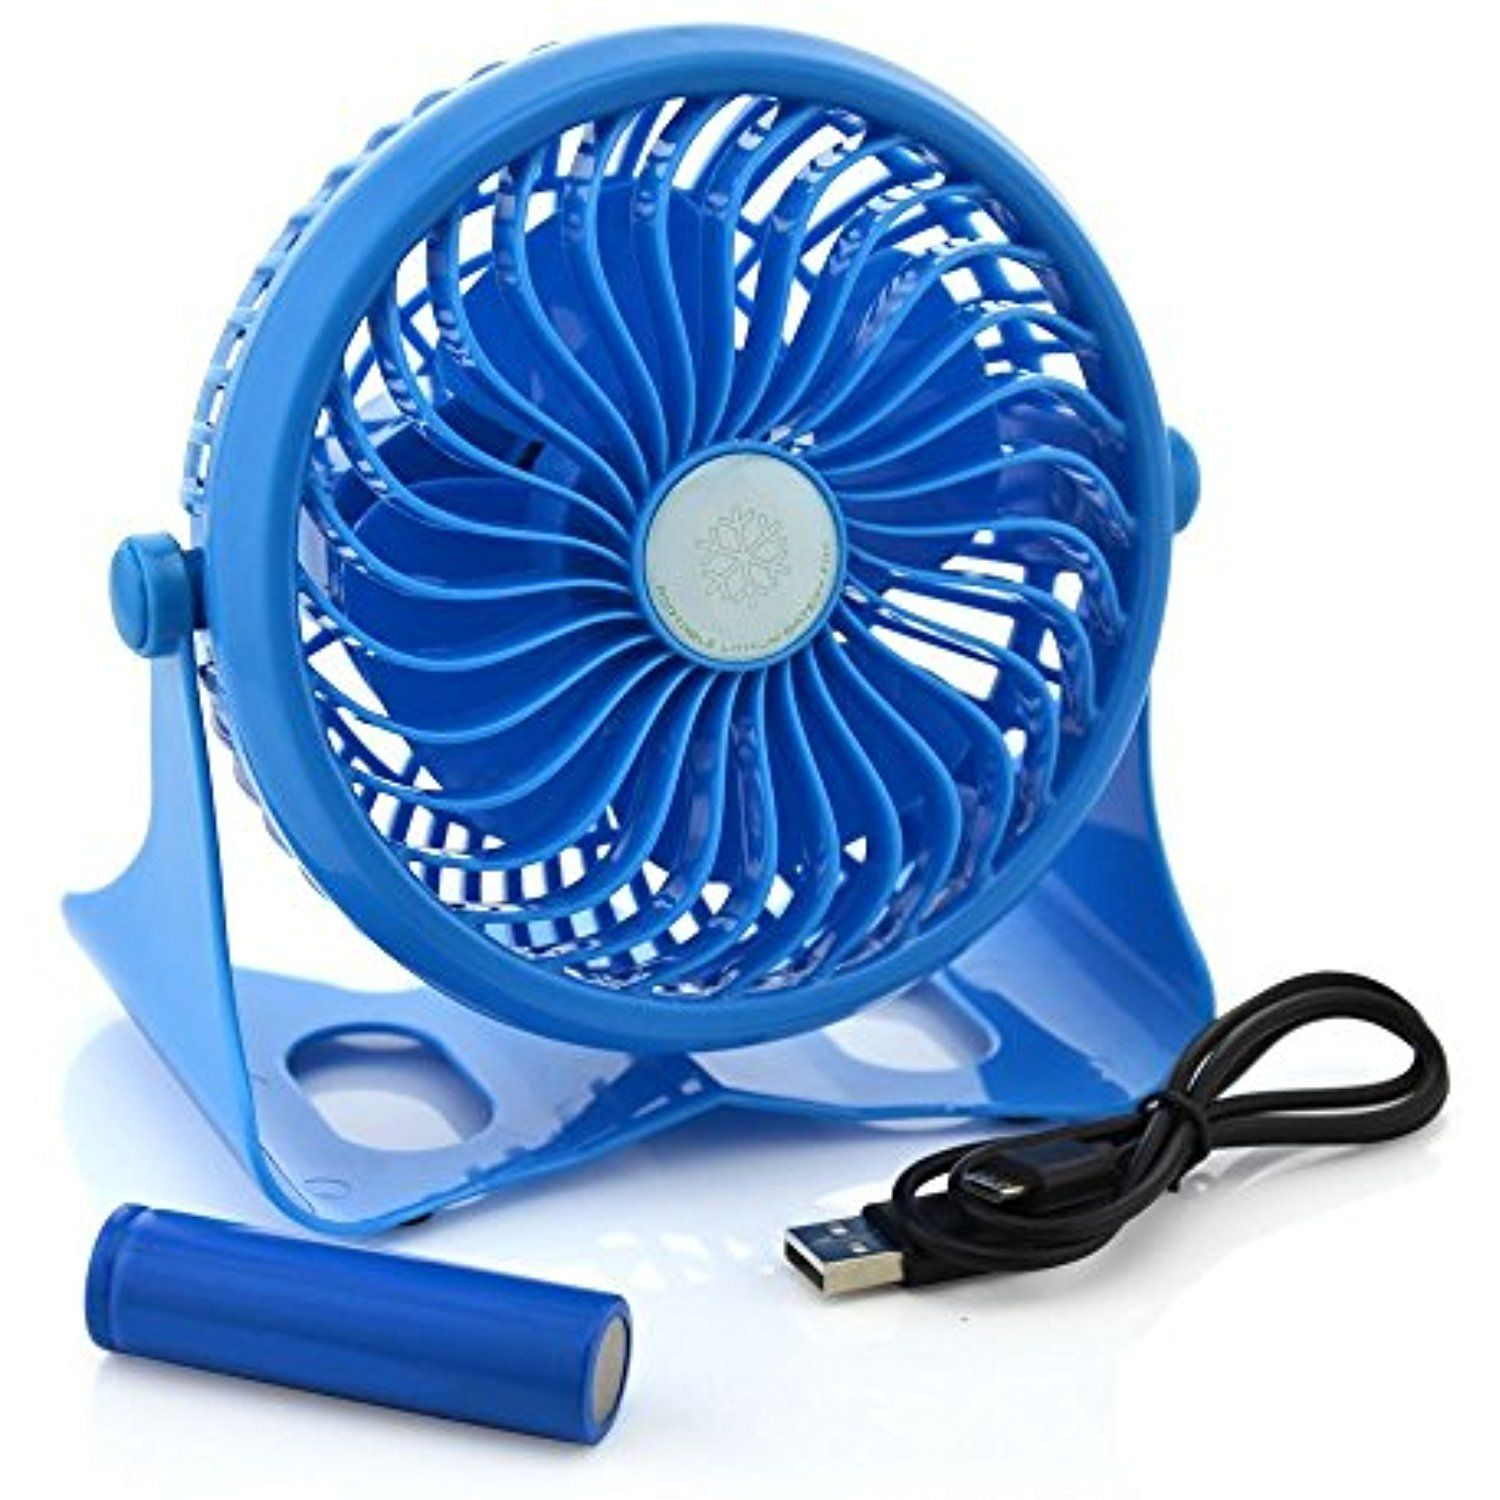 Momoday 360 Degree Adjustable Wireless Rechargeable Desk Fan Mini Kipas Fortable Portable Electric Personal Table Fans Stepless Wind Speed Adjustment With 18650